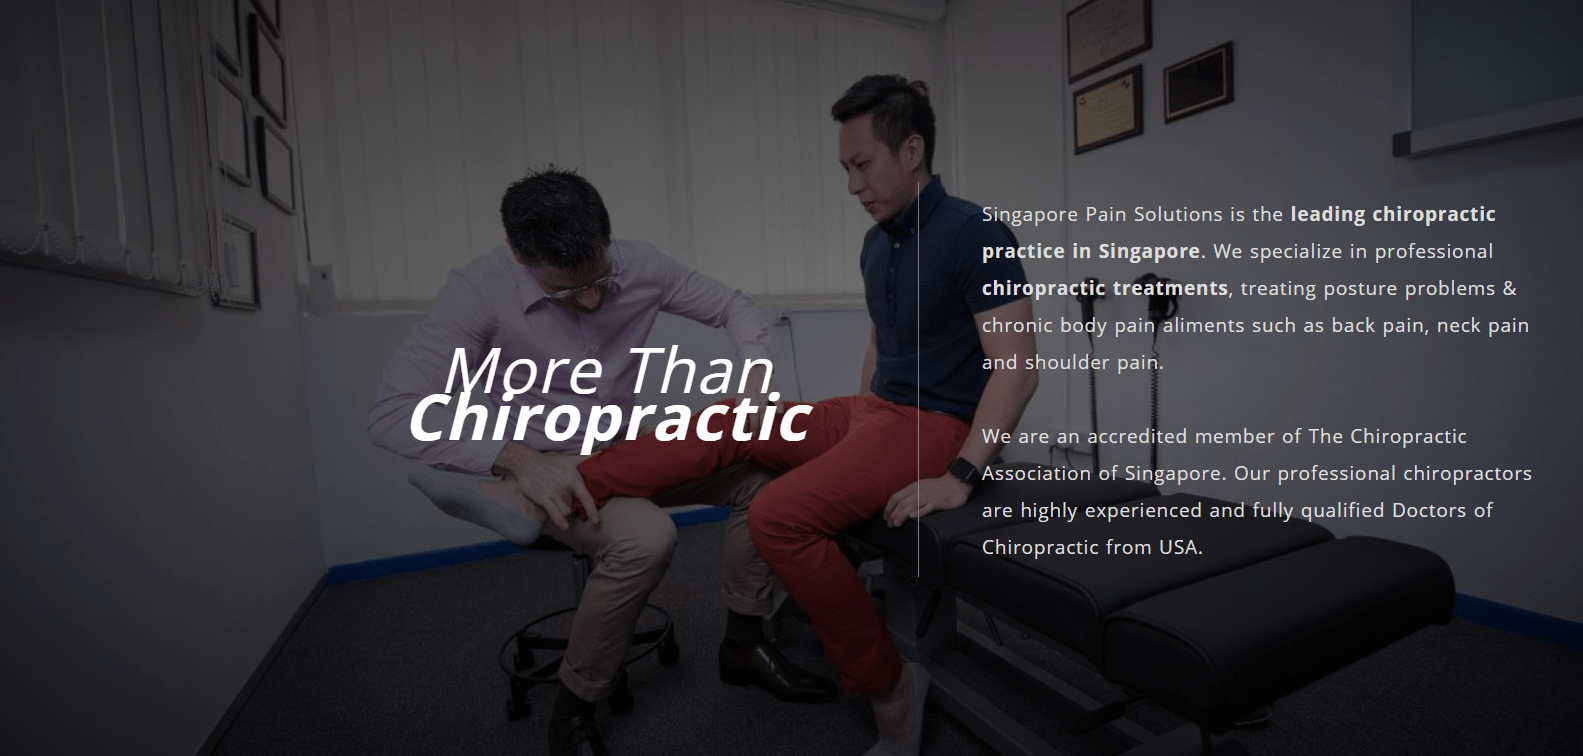 Singapore Pain Solutions is The Ultimate Guide To Seeing A Chiropractor in Singapore